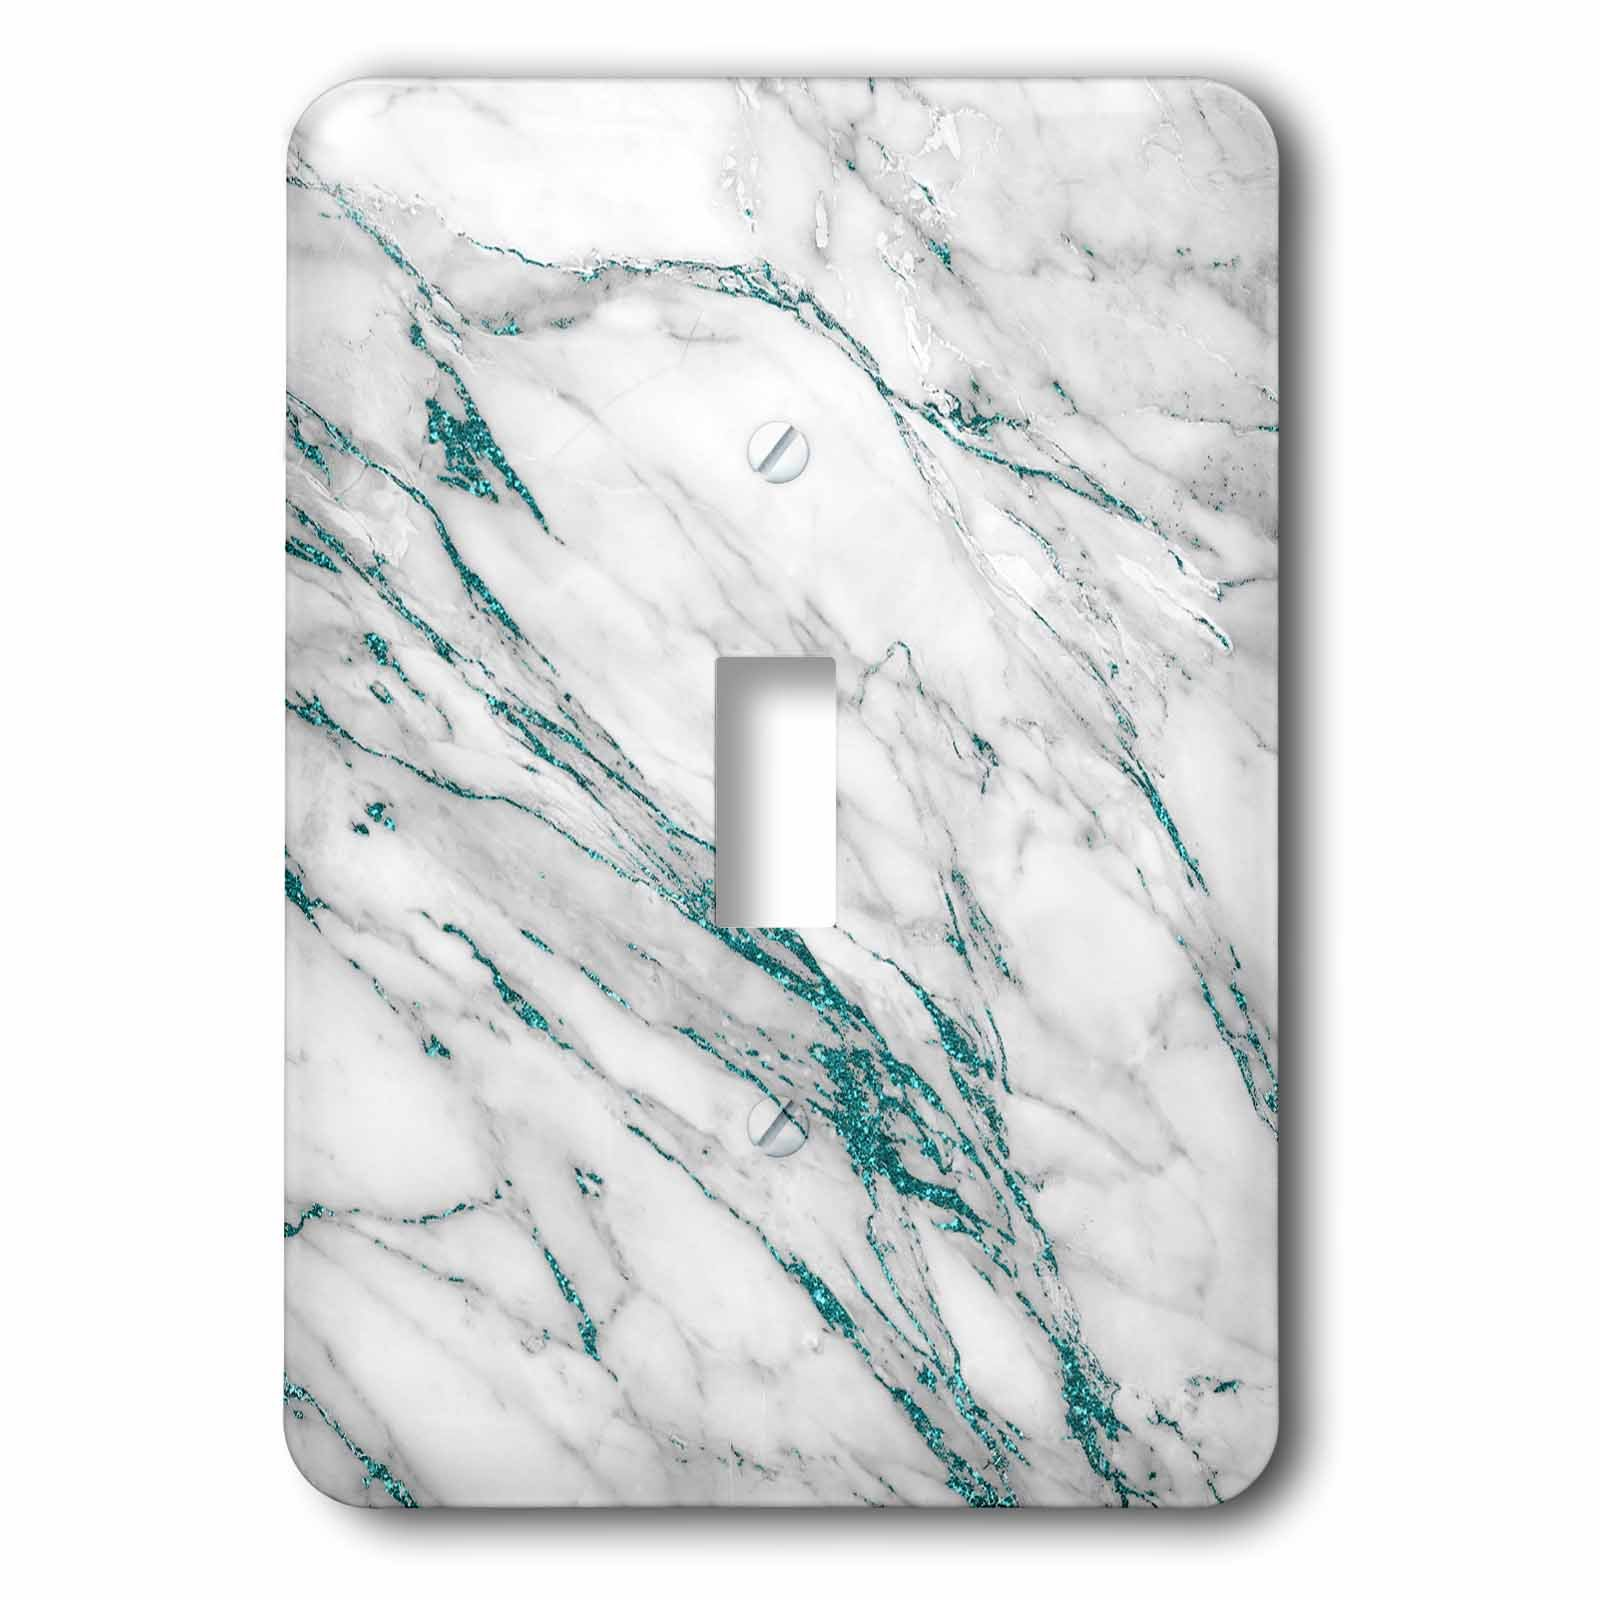 3dRose Uta Naumann Faux Glitter Pattern - Luxury Grey Aqua Teal Gem Stone Marble Glitter Metallic Faux Print - Light Switch Covers - single toggle switch (lsp_268837_1)